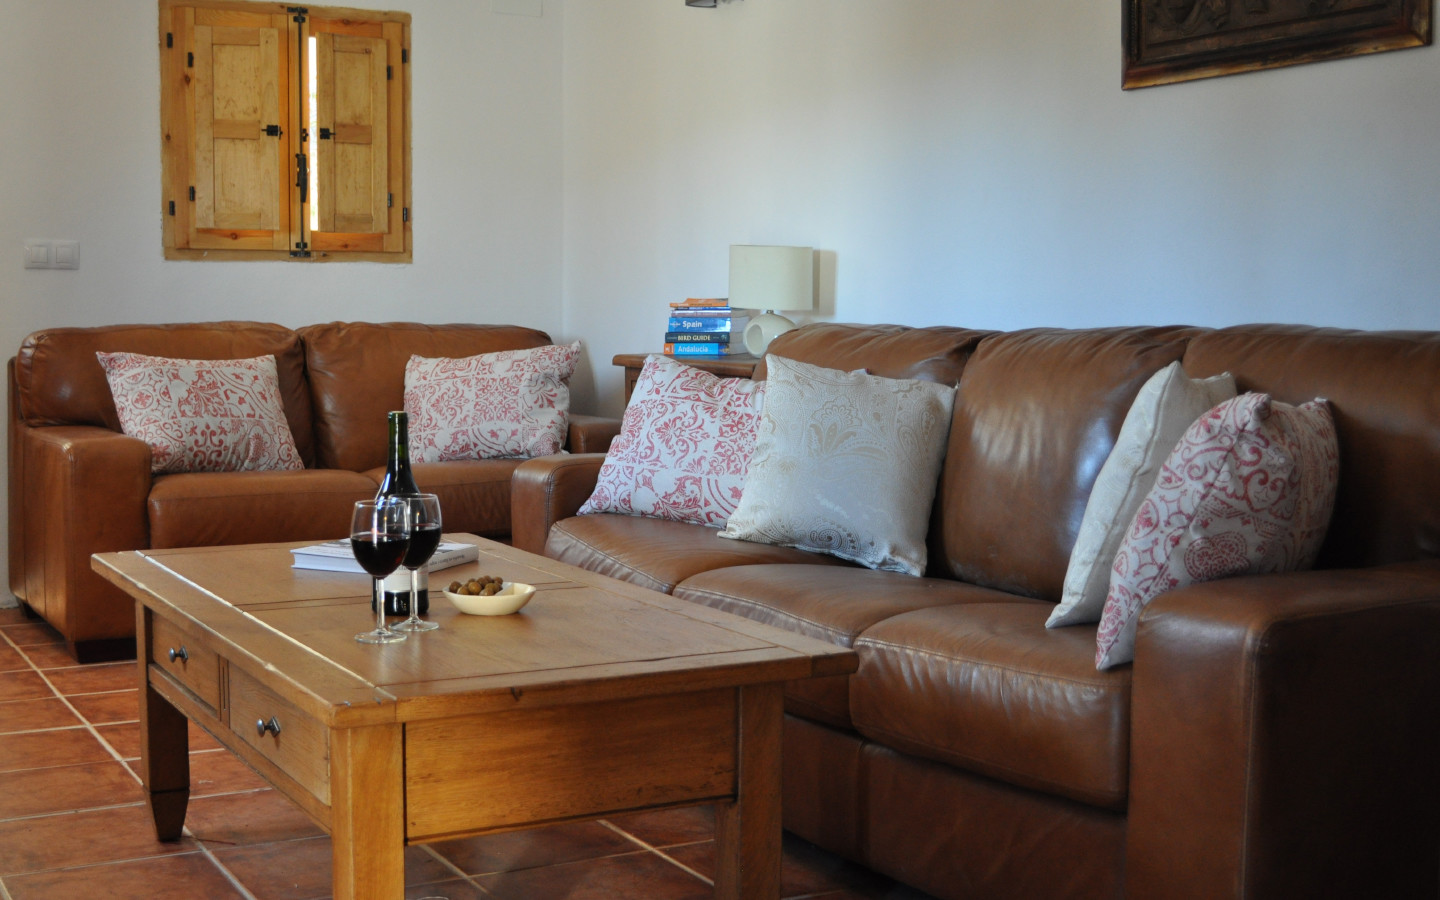 living_room_huerta_pequena_self catering_holiday_accommodation_Montefrio_www.rural-andalucia.com